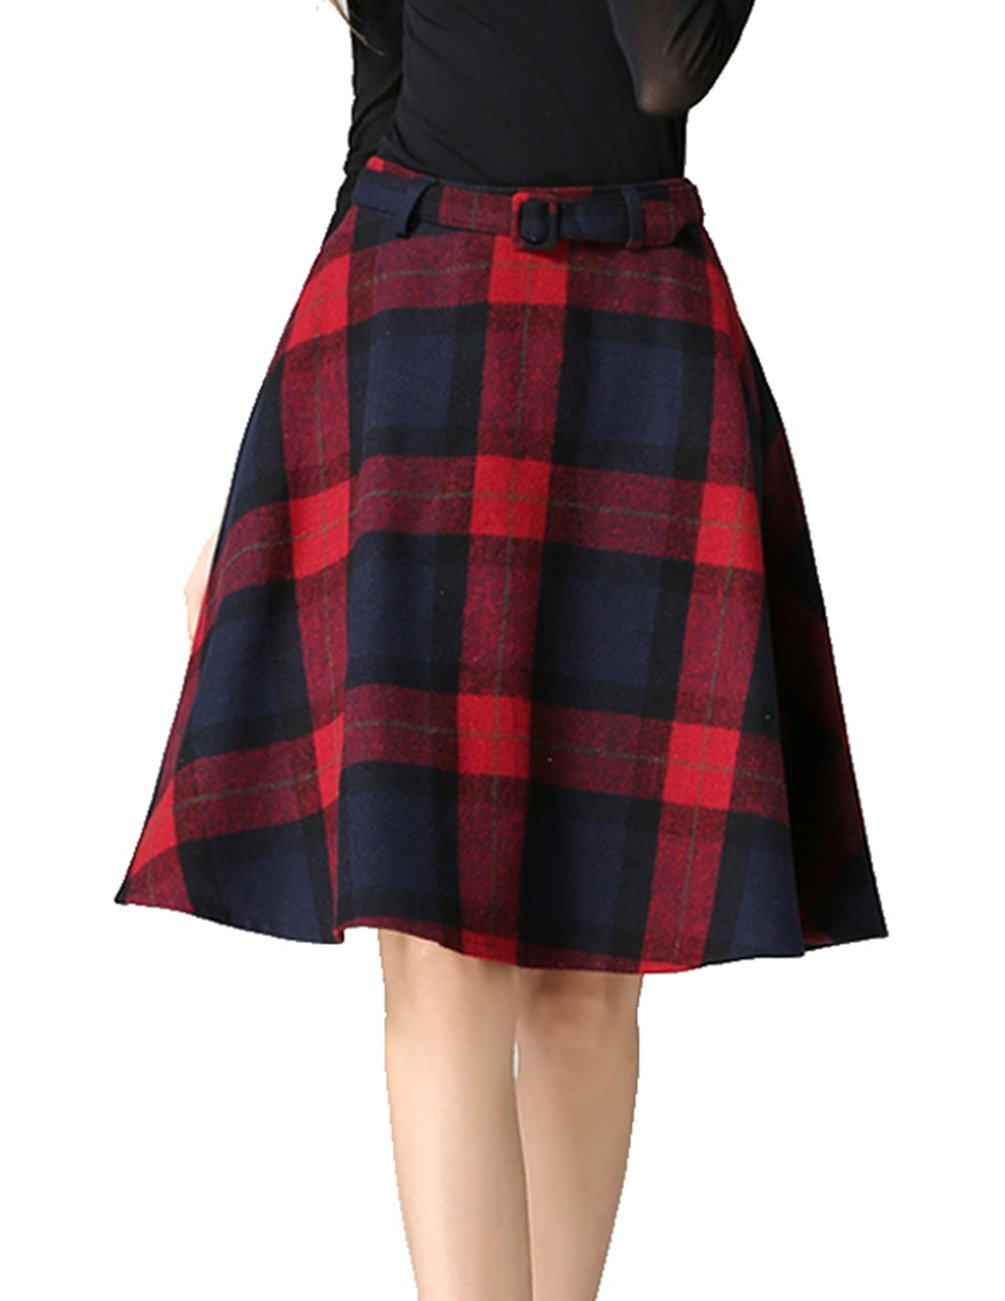 Womens Vintage Plaid Wool High Waist A-lineKnee Length Sakter Skirt with Pockets(S/US 2, Red) by Armear (Image #1)